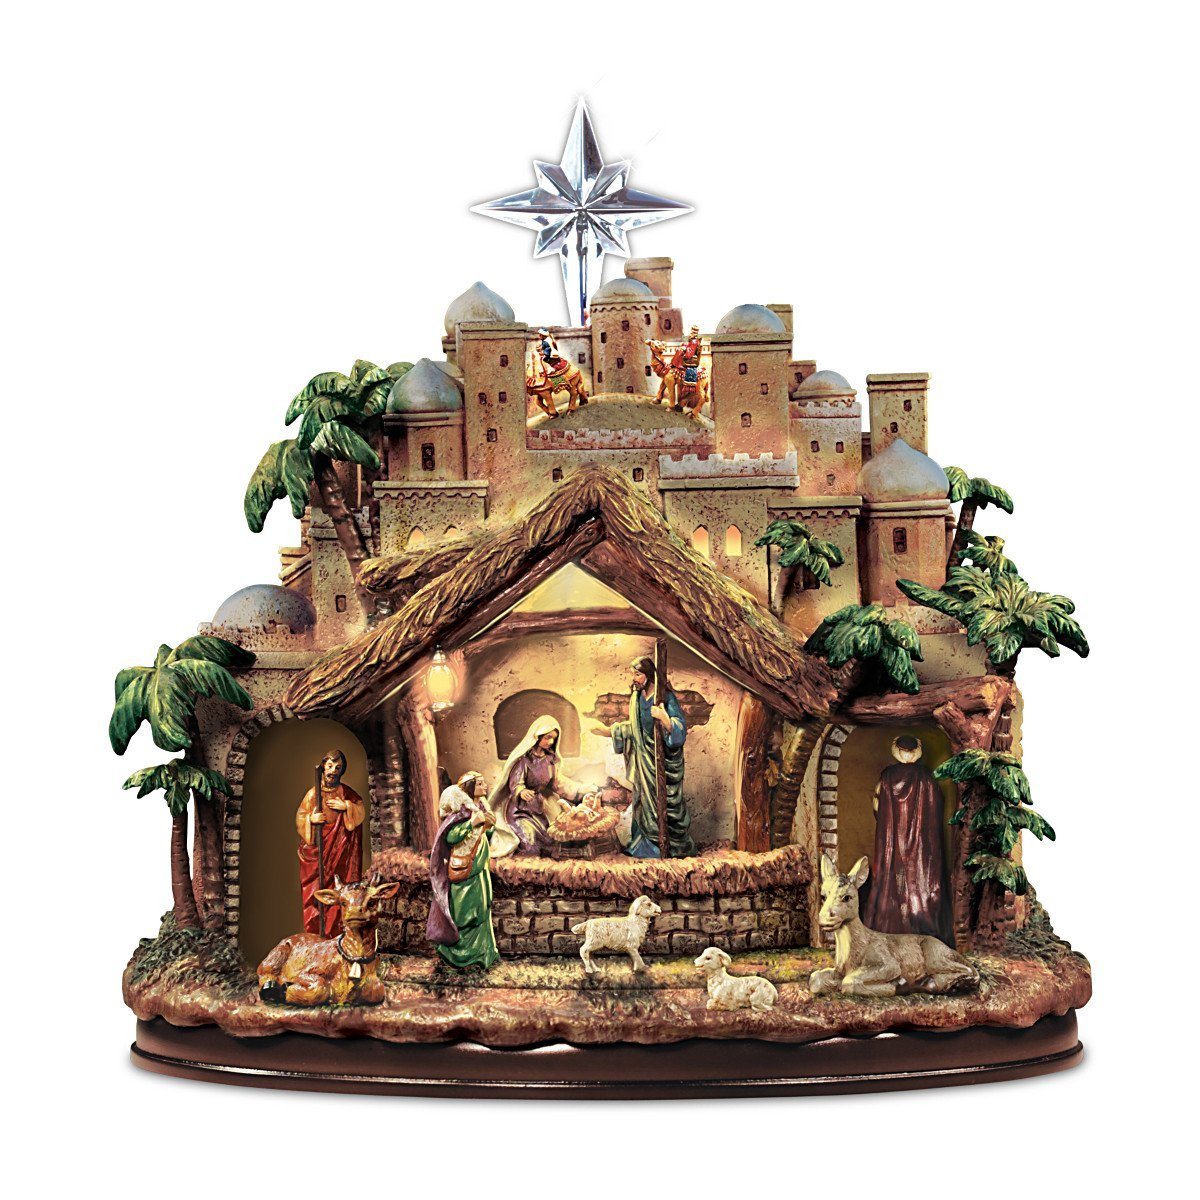 Home Interior Nativity Set 5260 Ultimate List Of Nativity Sets For Christmas Making Life